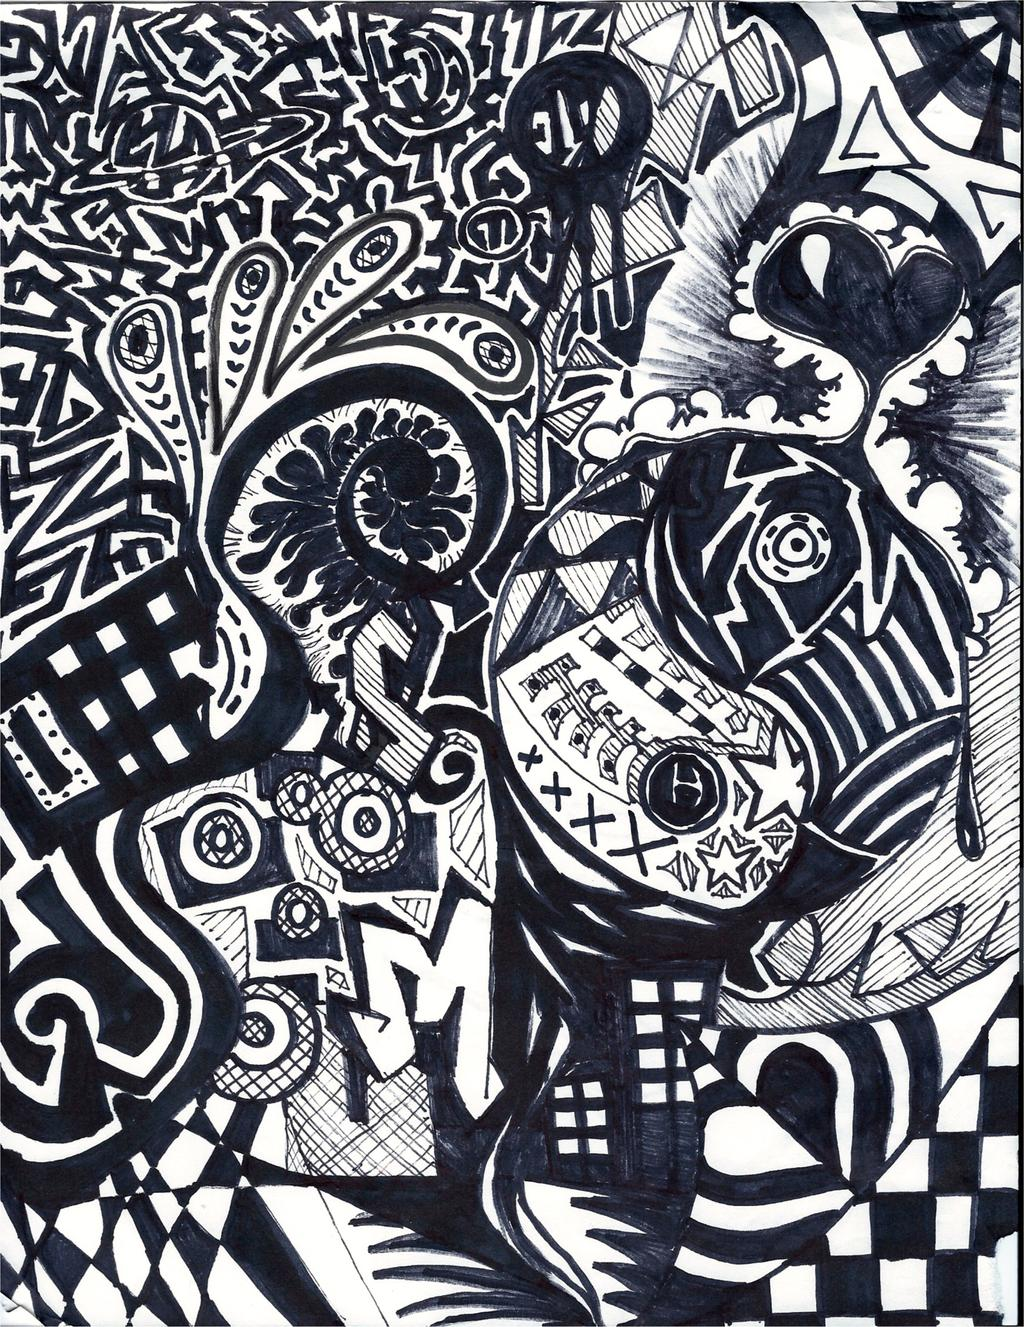 Sharpie Art by stella-luna12 on DeviantArt